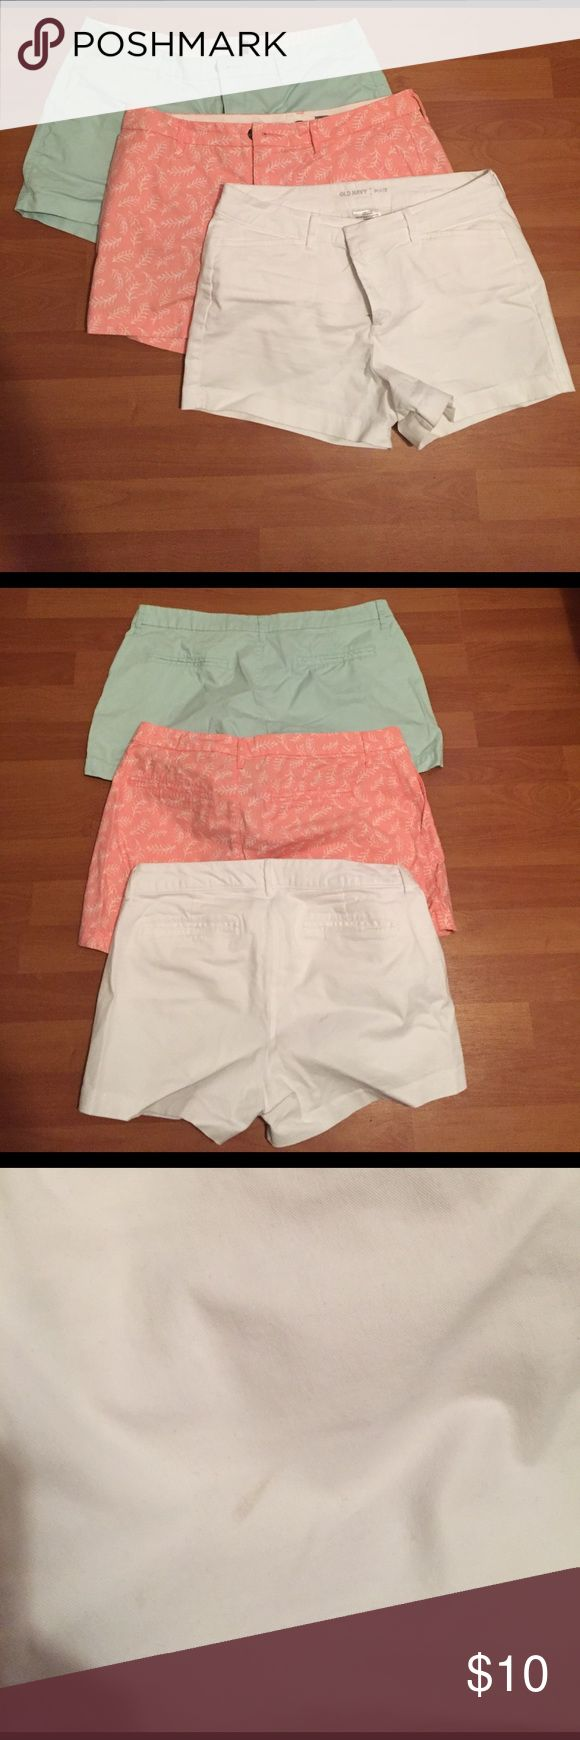 Old Navy short lot (2 pair) 🌻 2 pairs of Old Navy shorts. Small bleach stain on turquoise shorts, small stain on white shorts. Will sell individually or together. $4 individually. Price reflects flaws. 🚫PINK SHORTS NO LONGER AVAILABLE!!!🚫 Old Navy Shorts